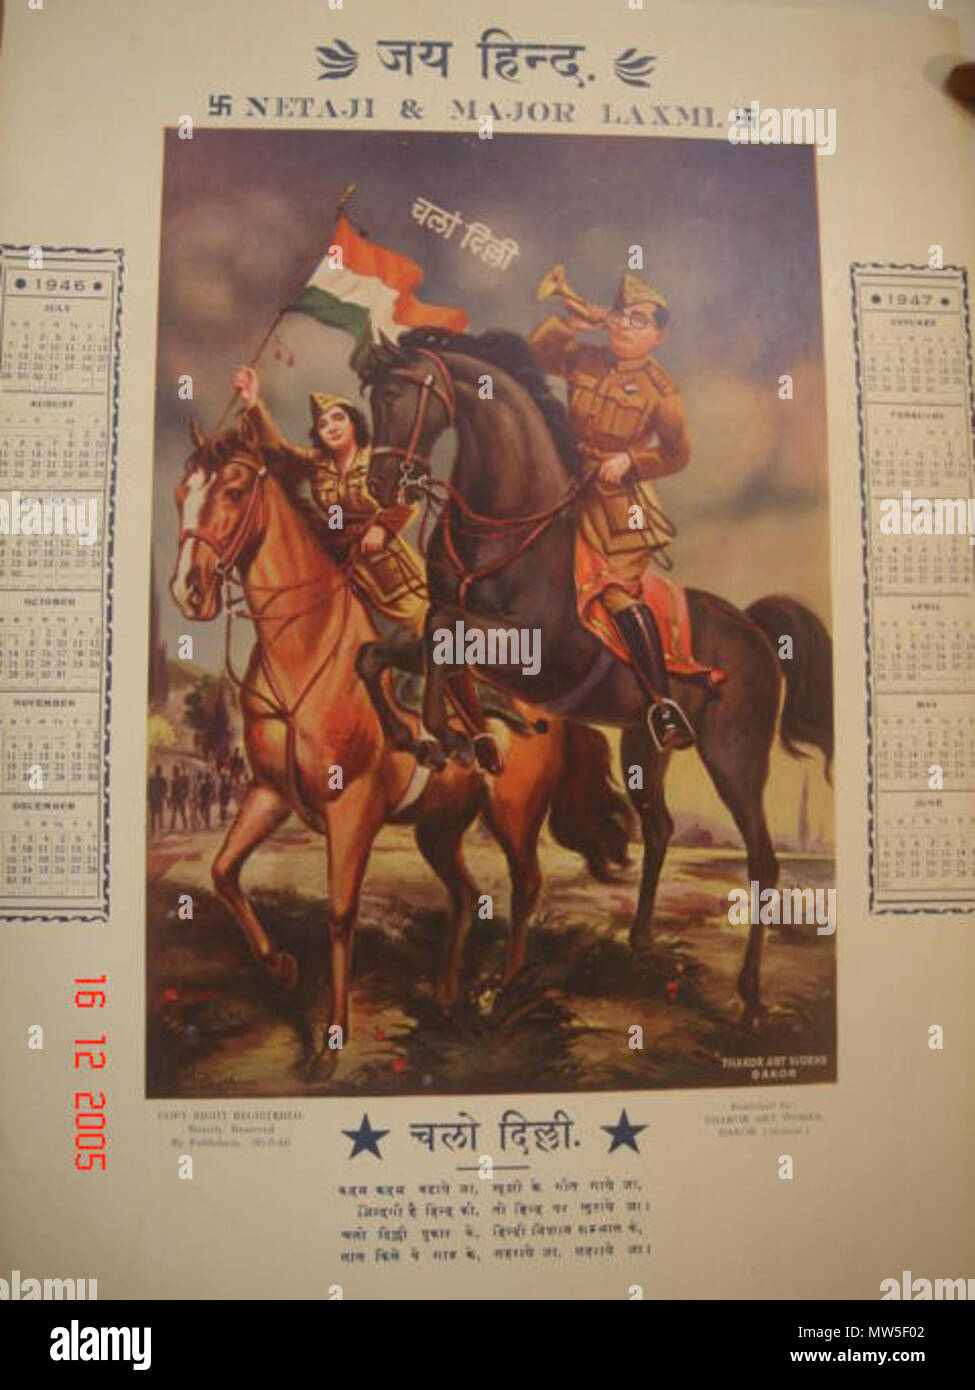 . English: Calendar art memorializing Netaji, 1946-47: he is given a sword by Durga, and then attacks: 'Chalo Dilli!' (On to Delhi!) Source: ebay, Dec. 2006 . between 1946 and 1947. Unknown 121 Chalo Dilli - Stock Image